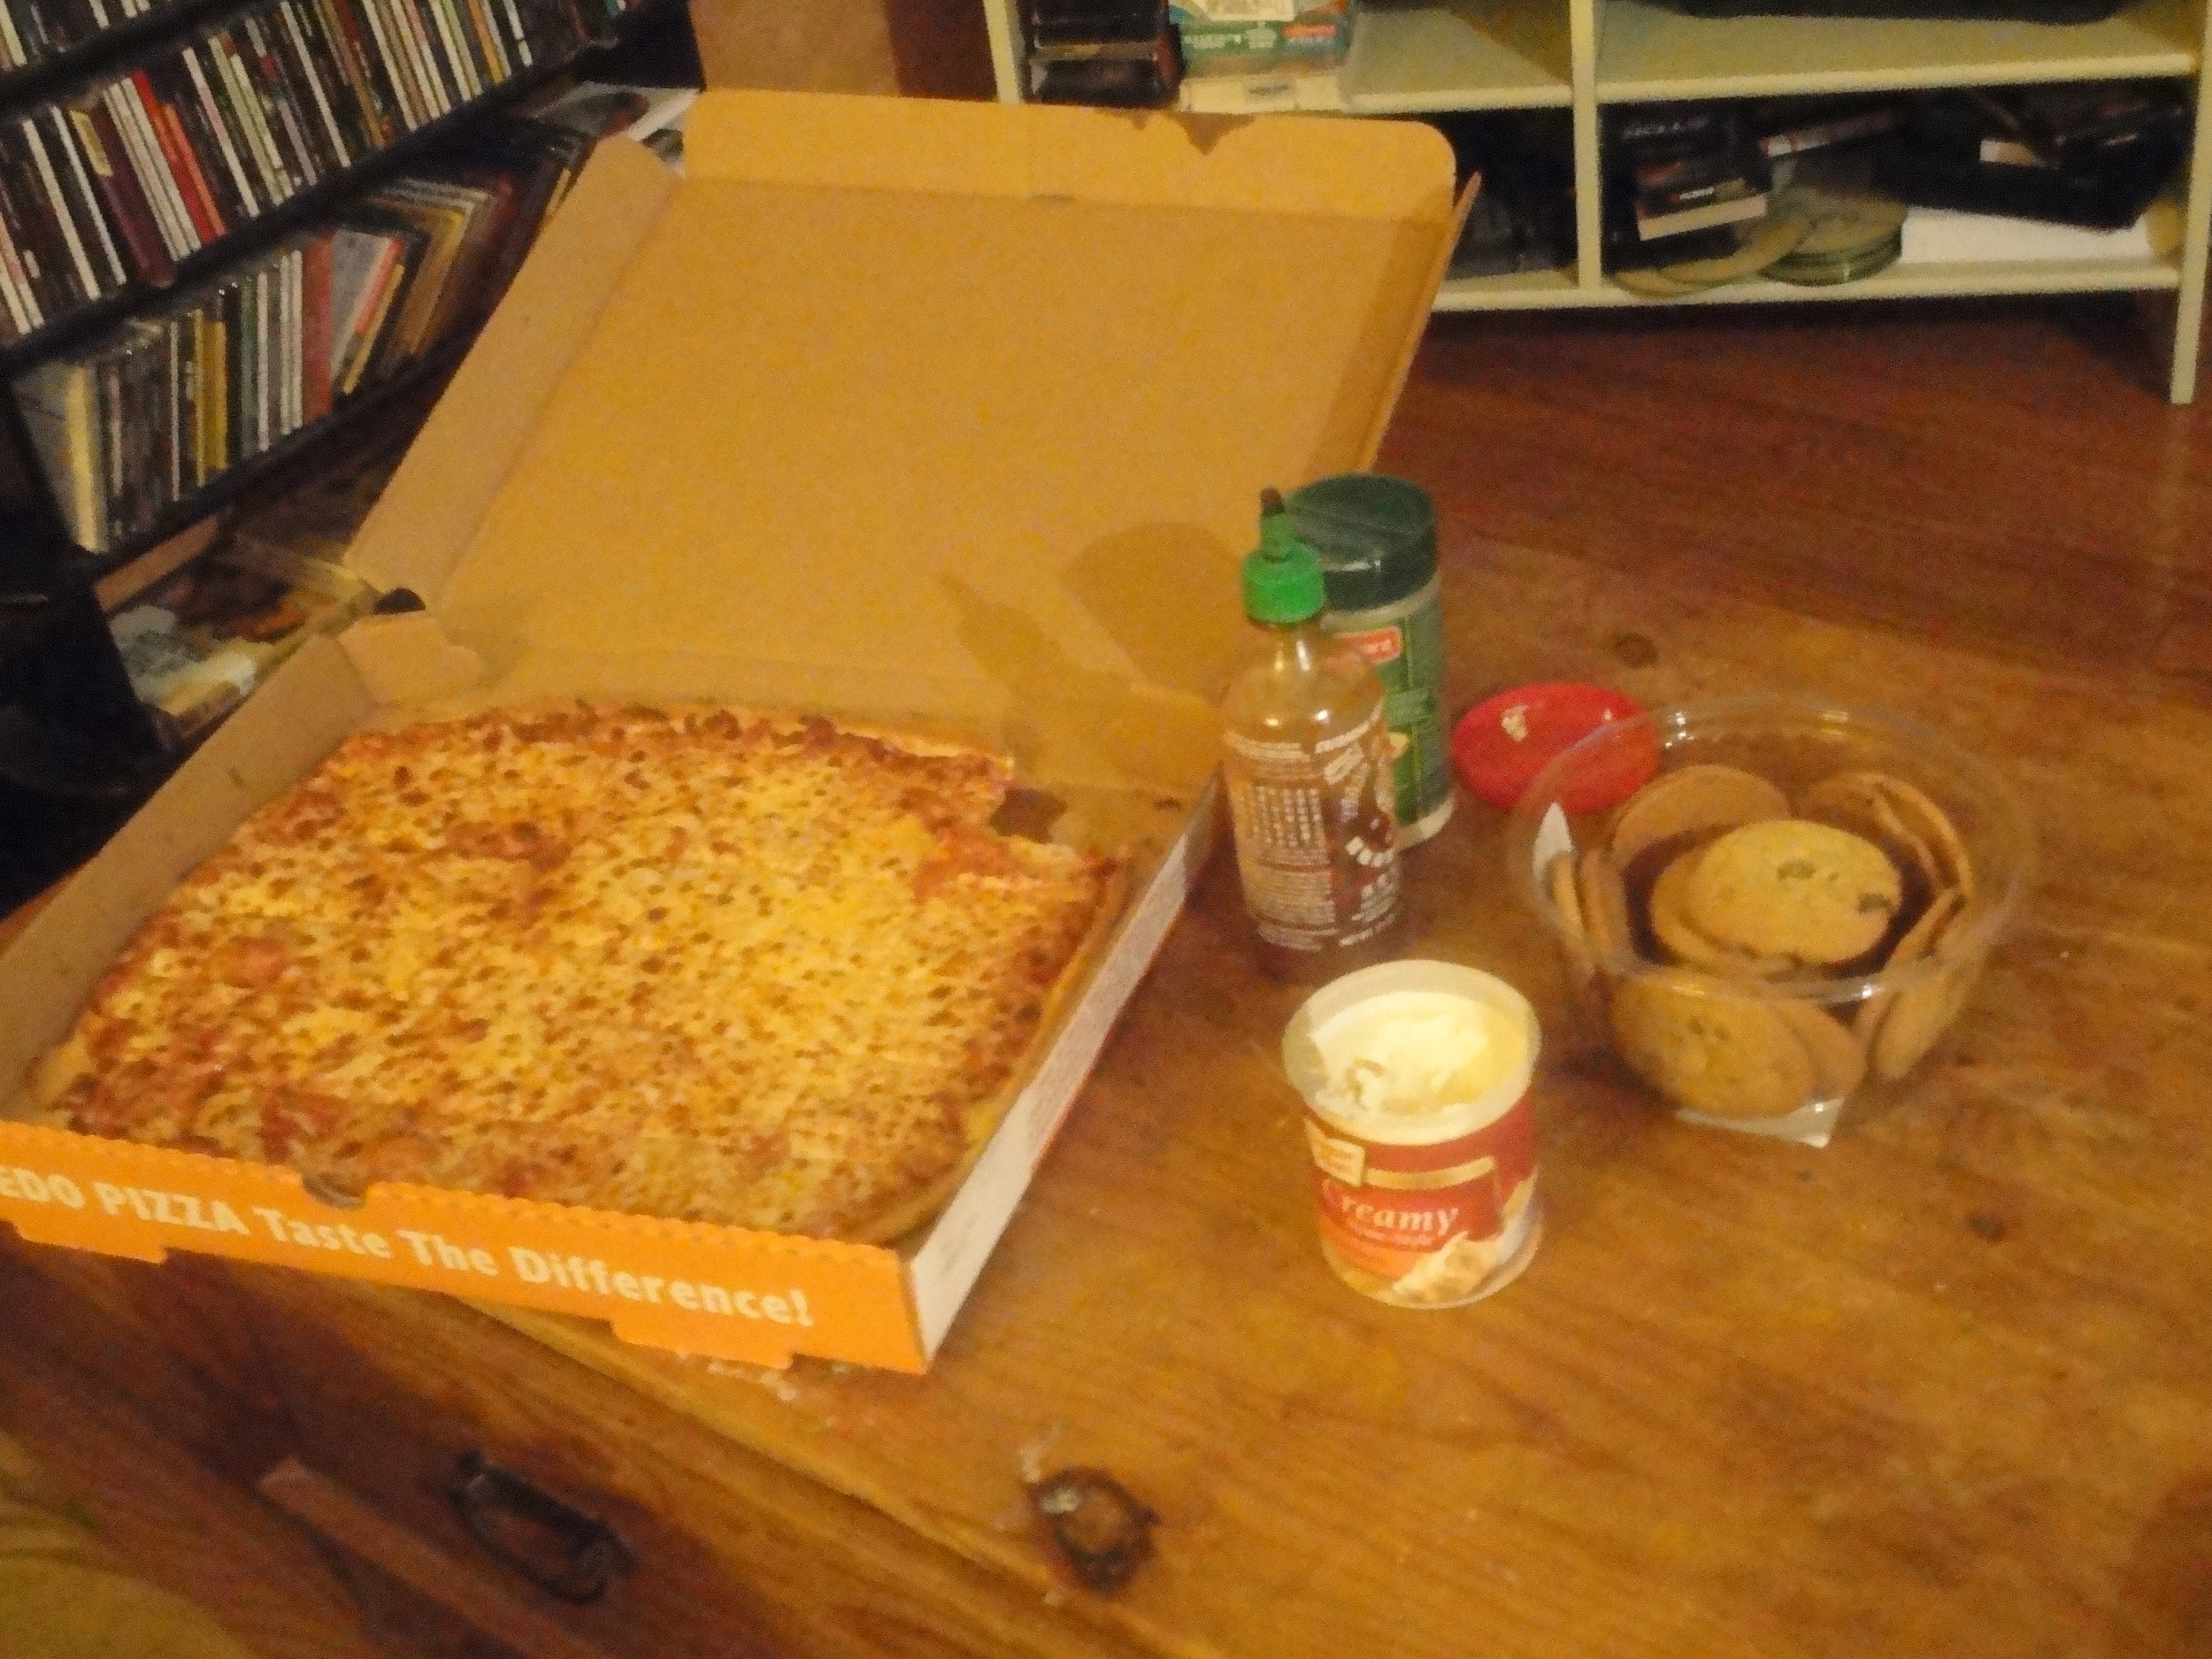 1 extra cheese large Ledo pizza. 1 container of chocolate cookies. I container I vanilla icing.